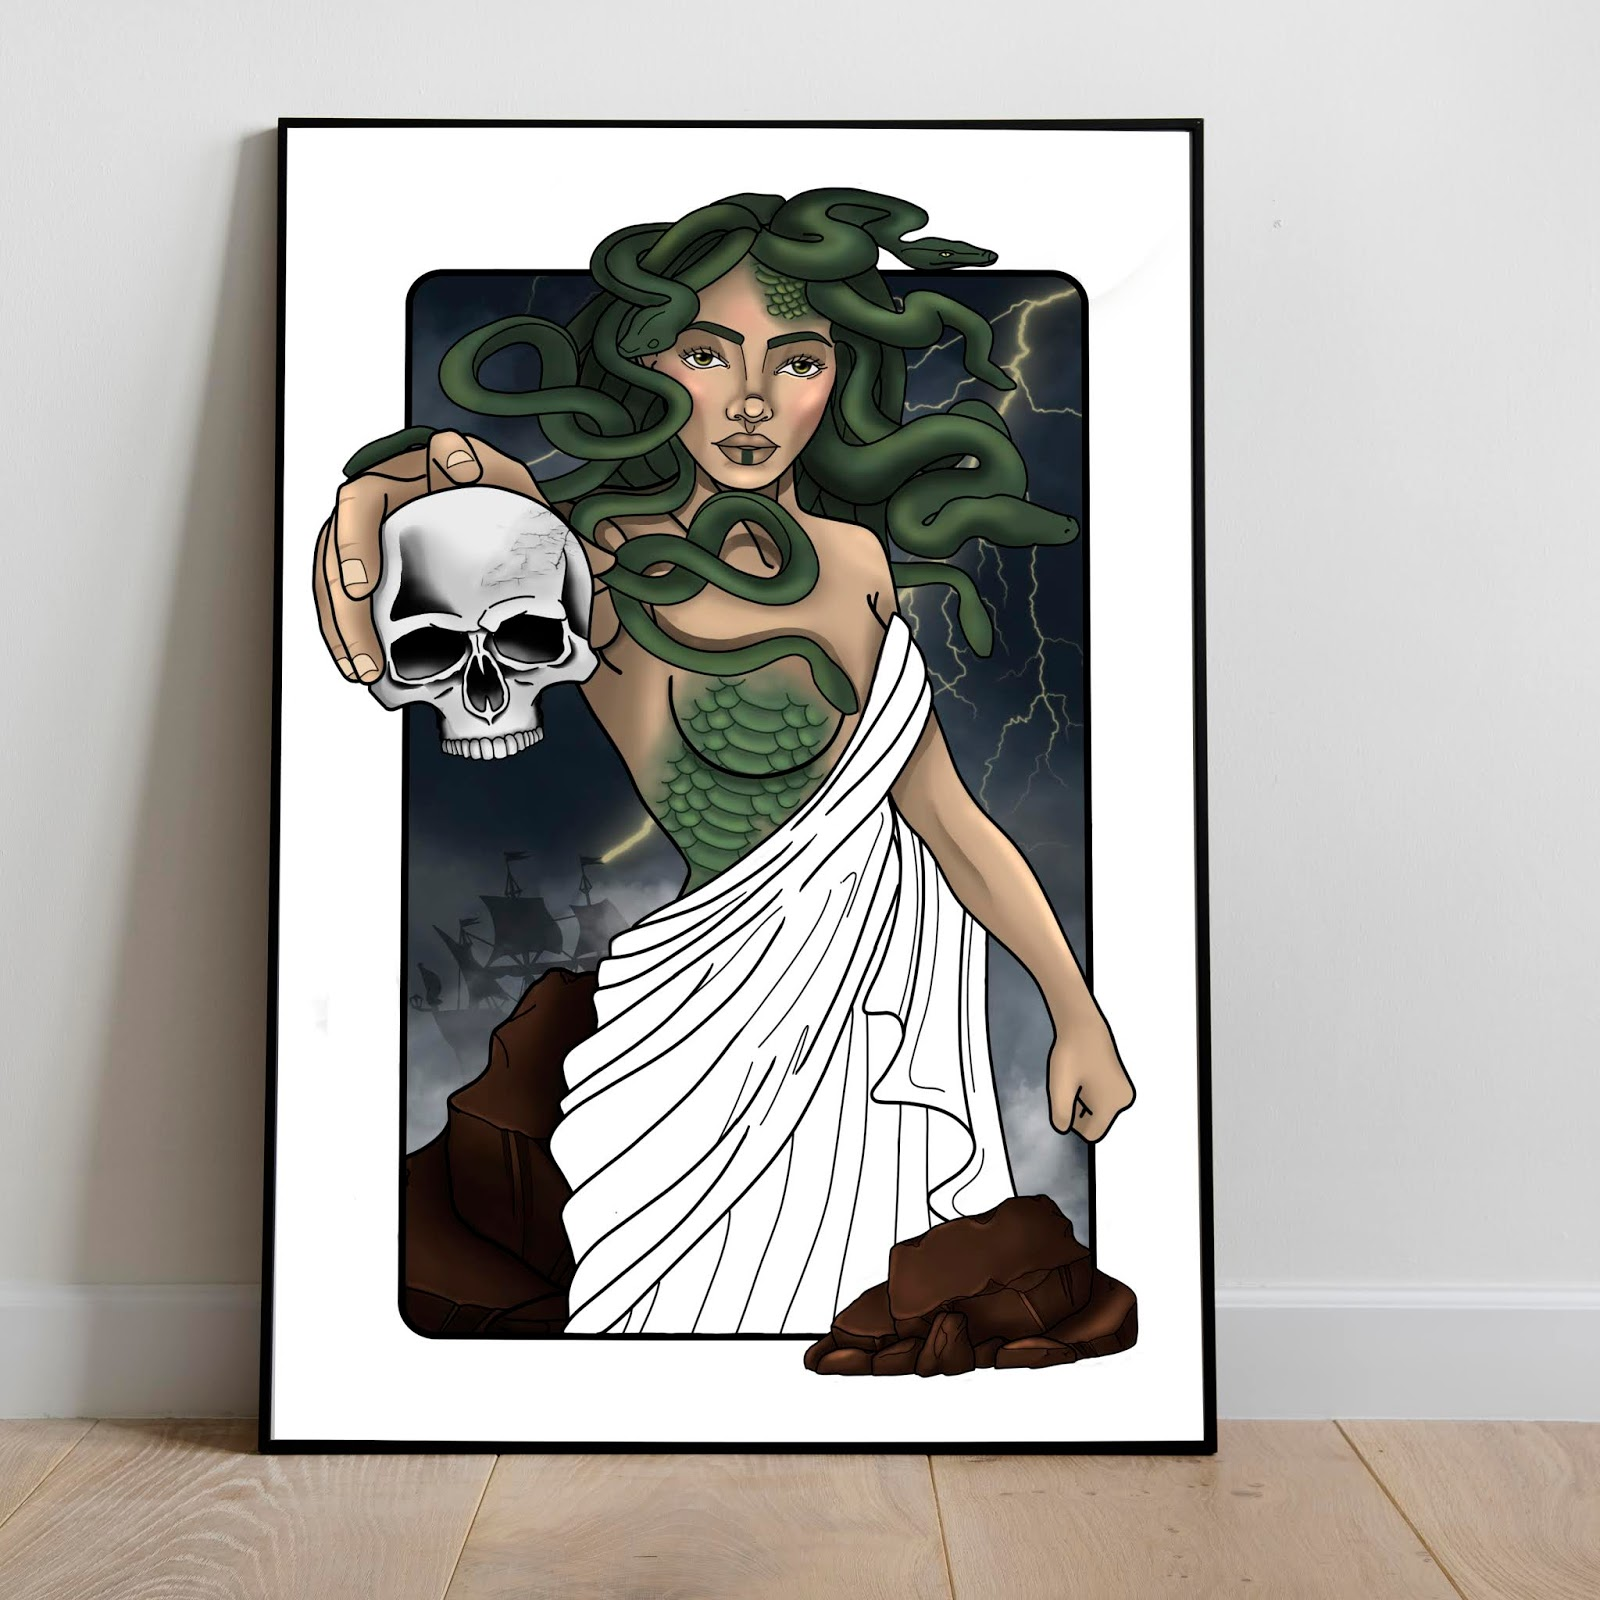 Medusa art print for sale by Konstantina Antoniadou